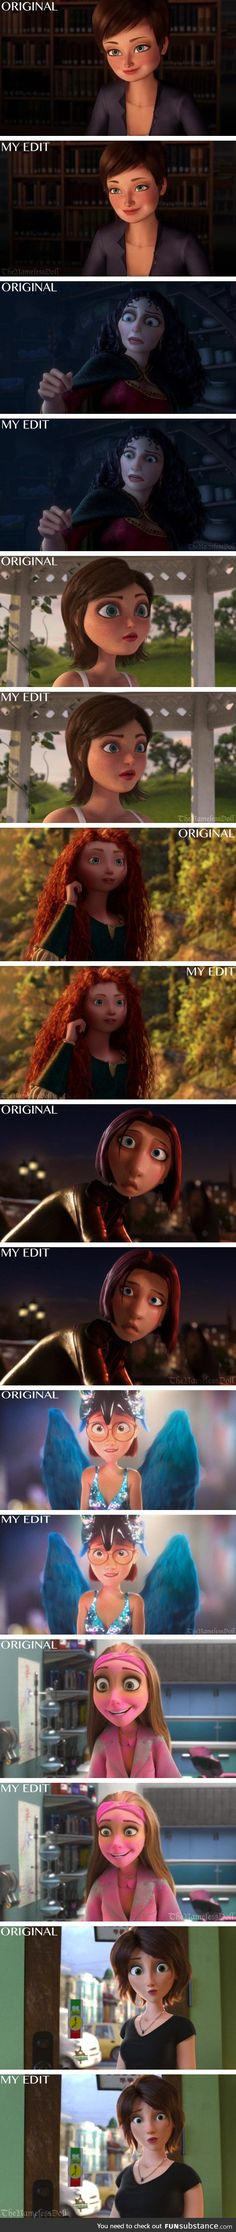 Disney/non-Disney characters with more realistic faces